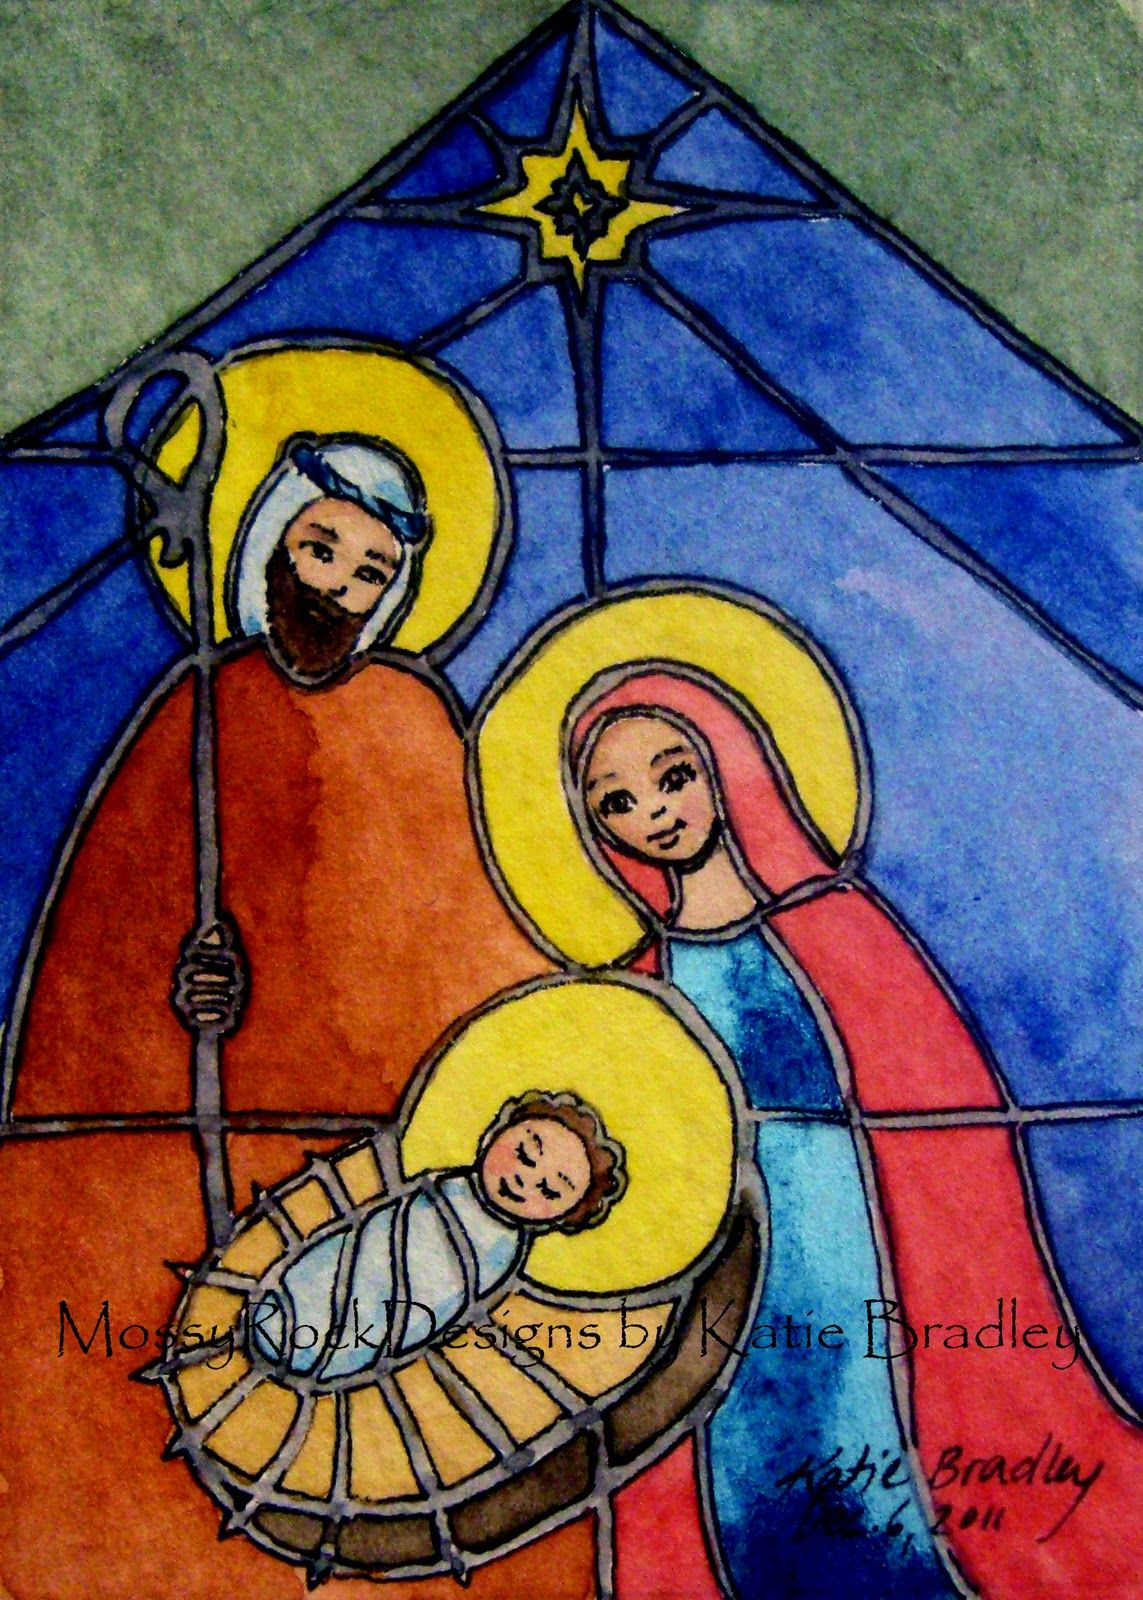 Mossyrockdesigns By Katie Bradley December 2011 Stained Glass Christmas Nativity Painting Nativity